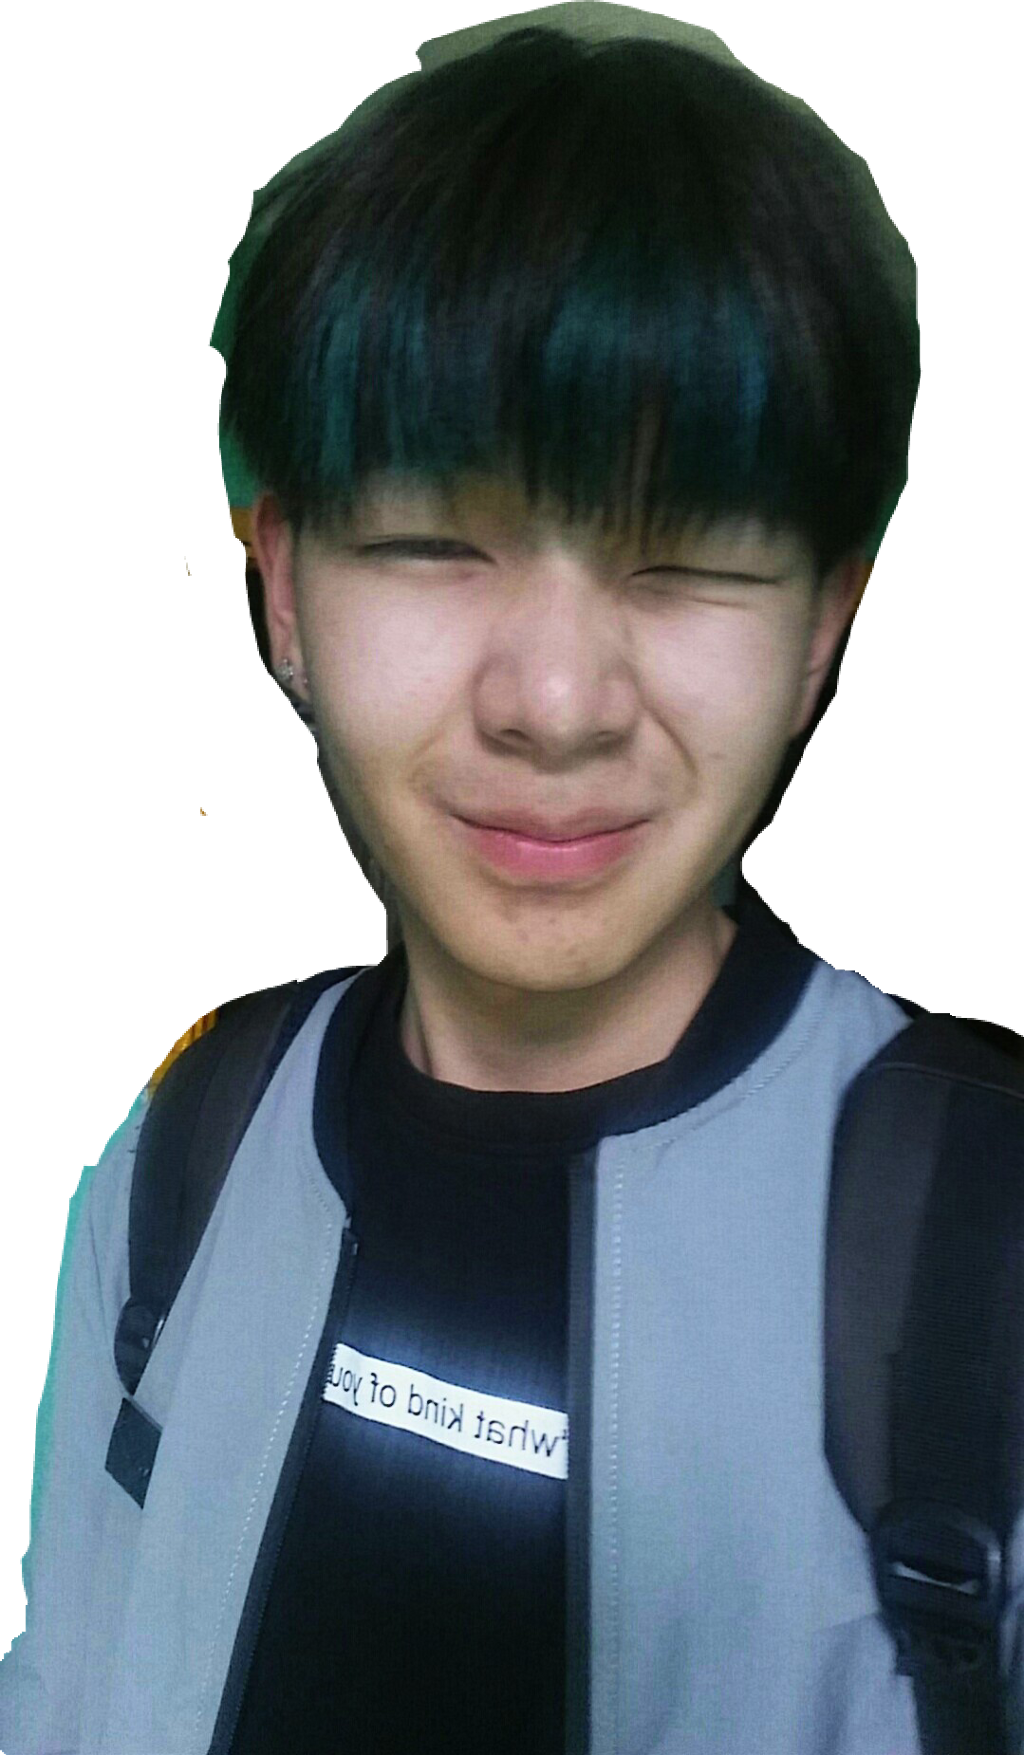 Bowl cut png. Freetoedit image by temkaa